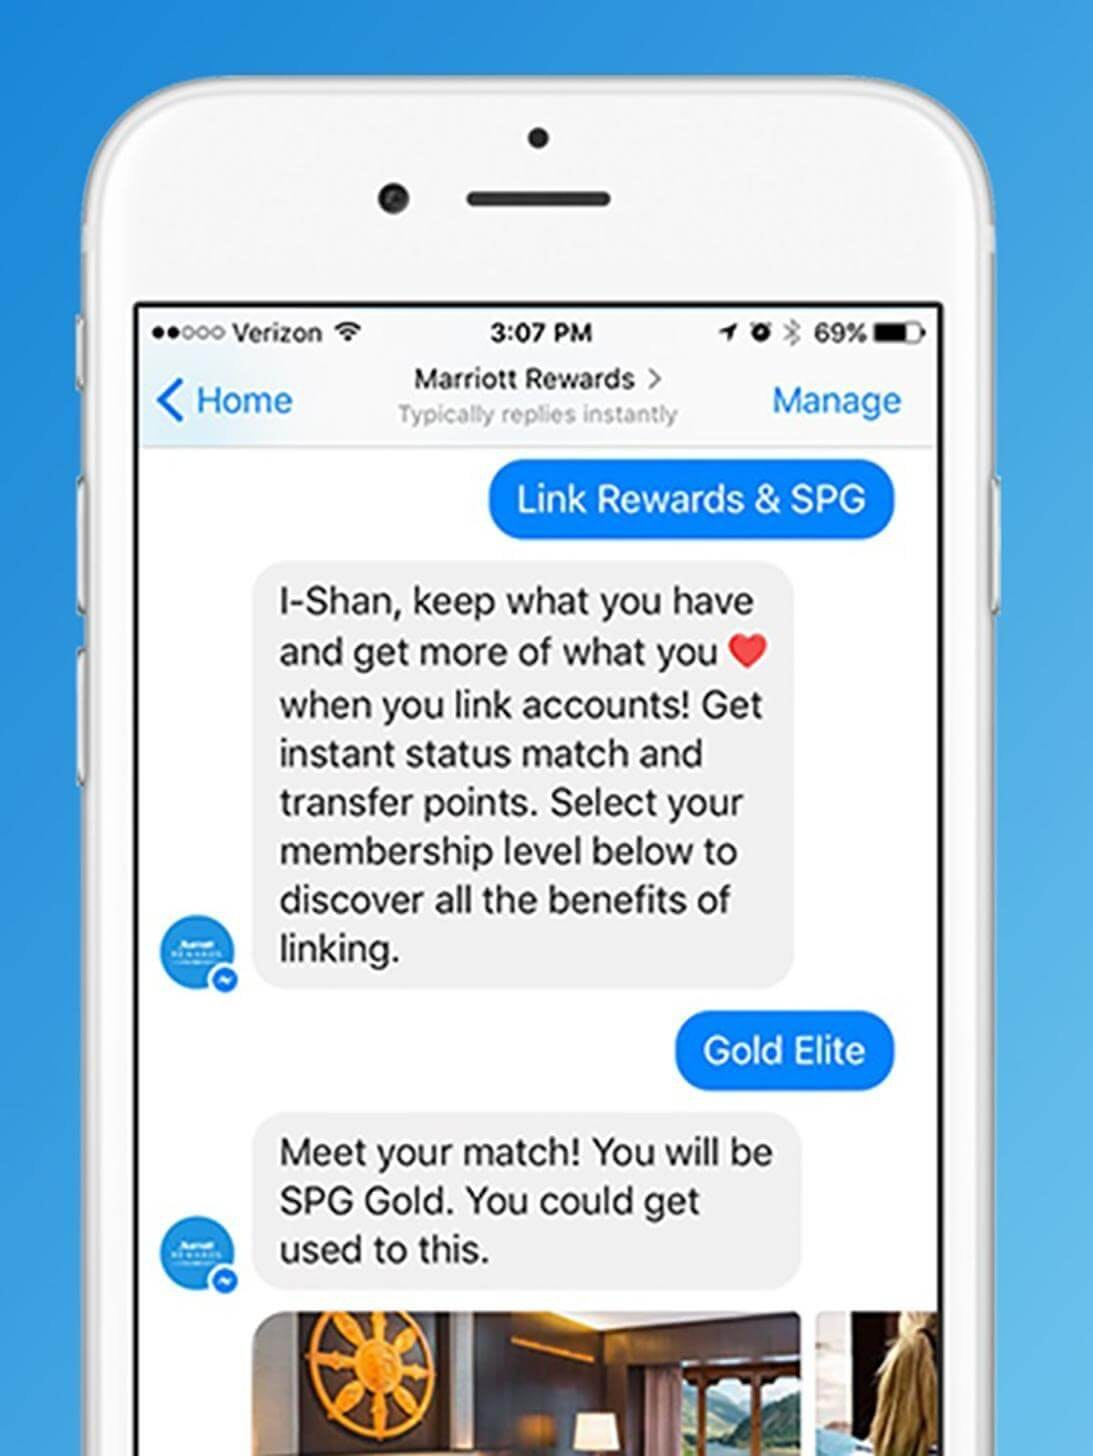 Marriot's Facebook chatbot